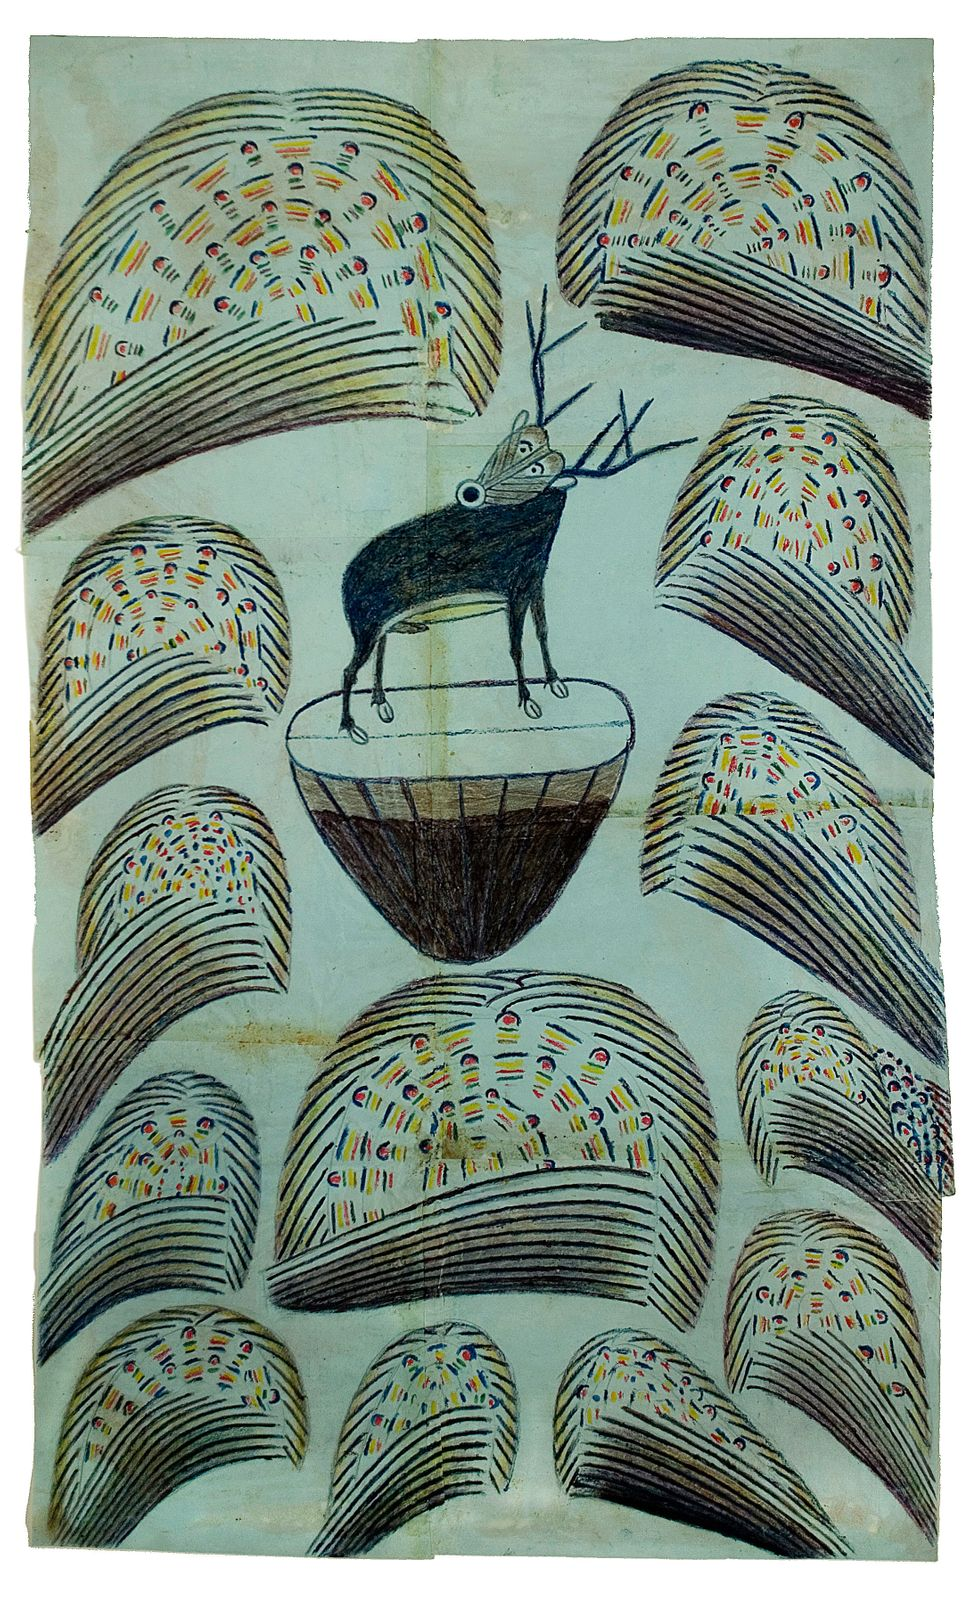 Martín Ramírez, Untitled, (Stag on mound with fireworks), c.1952-53. graphite, tempera and crayon on paper 32 x 19 1/2 inches